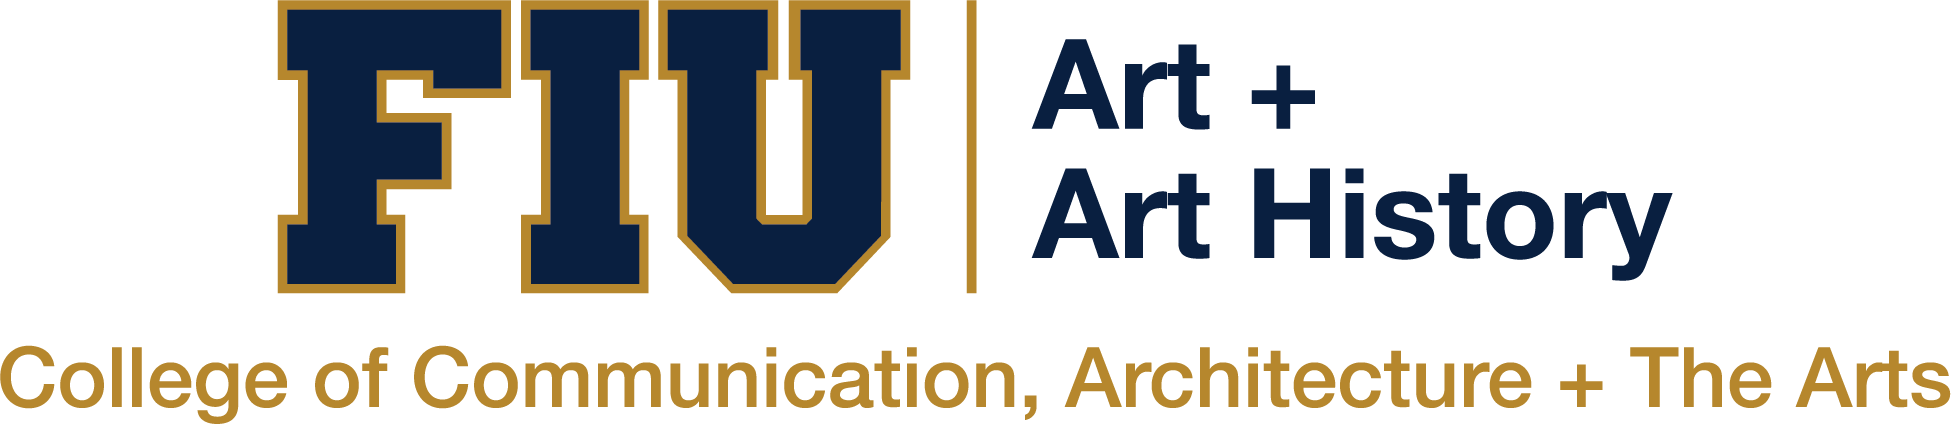 Department of Art + Art History Logo